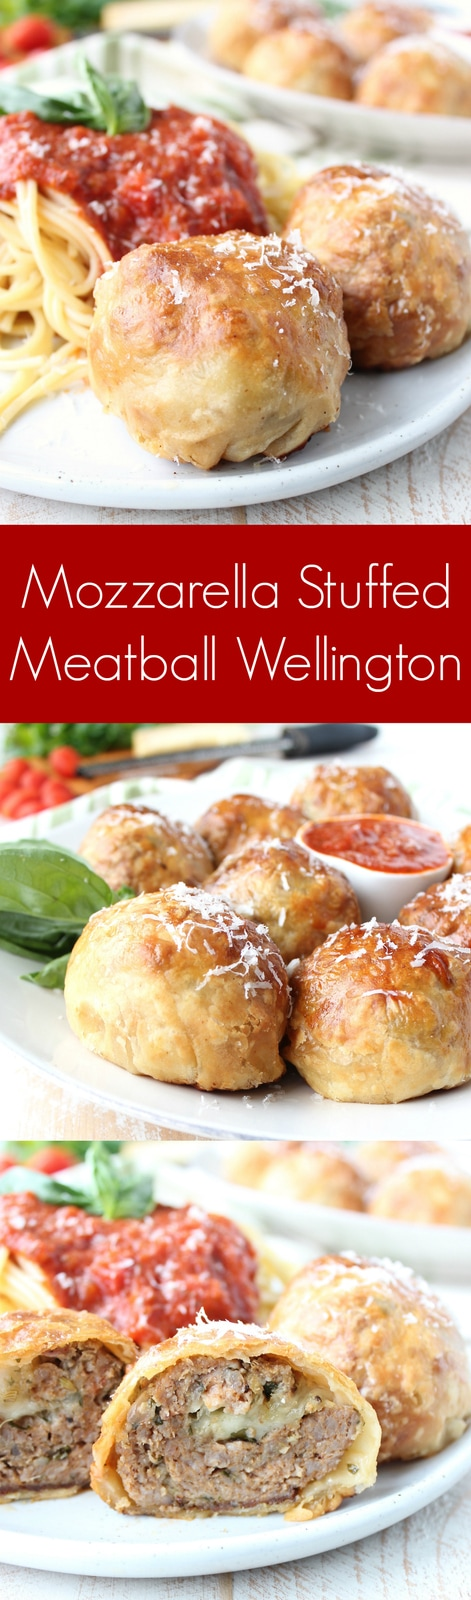 Mozzarella Stuffed Meatball Wellington Recipe